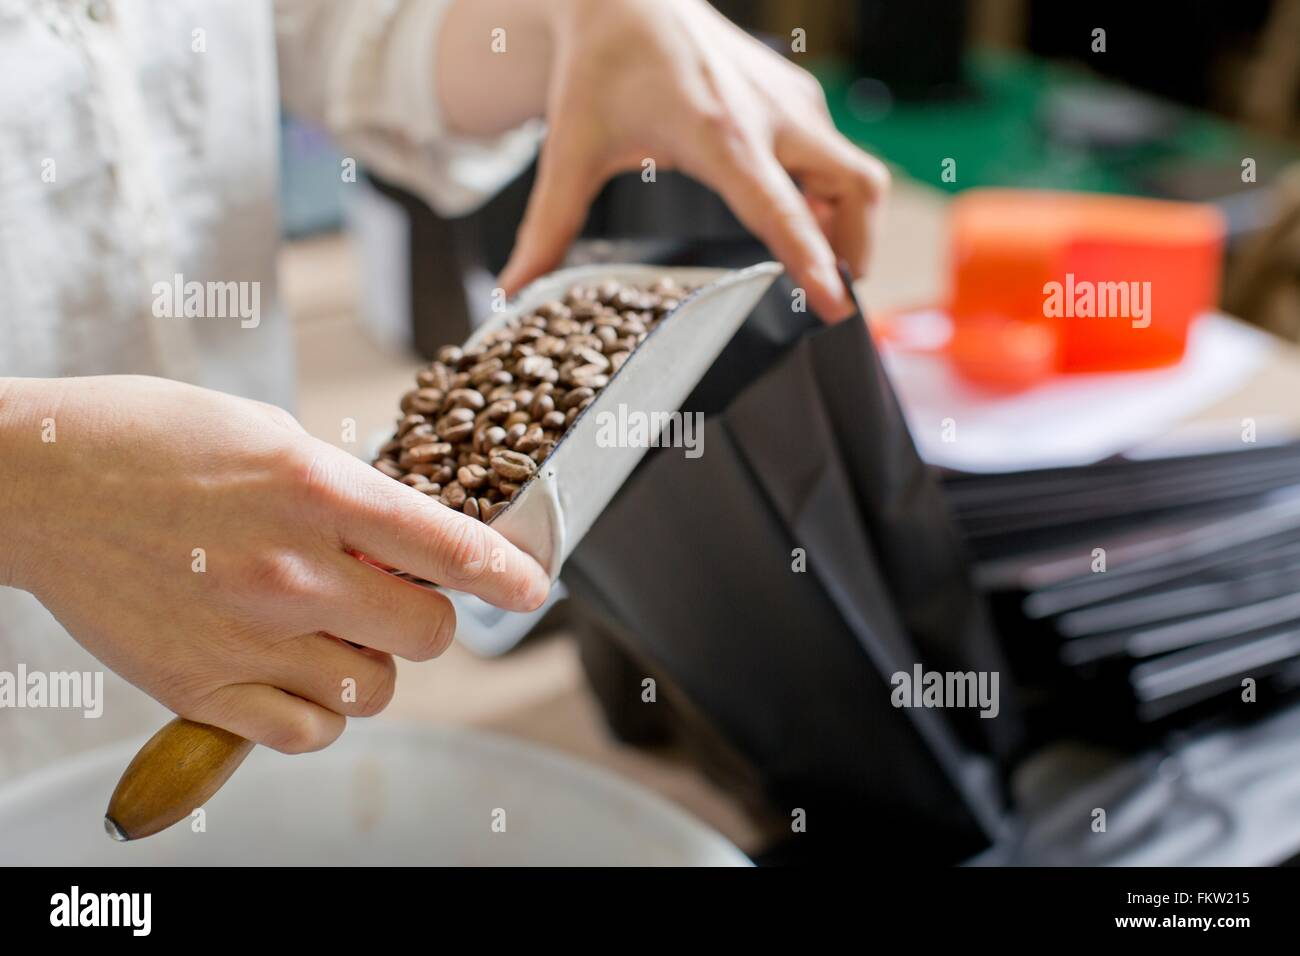 C fee seller filling bag with c fee beans - Stock Image